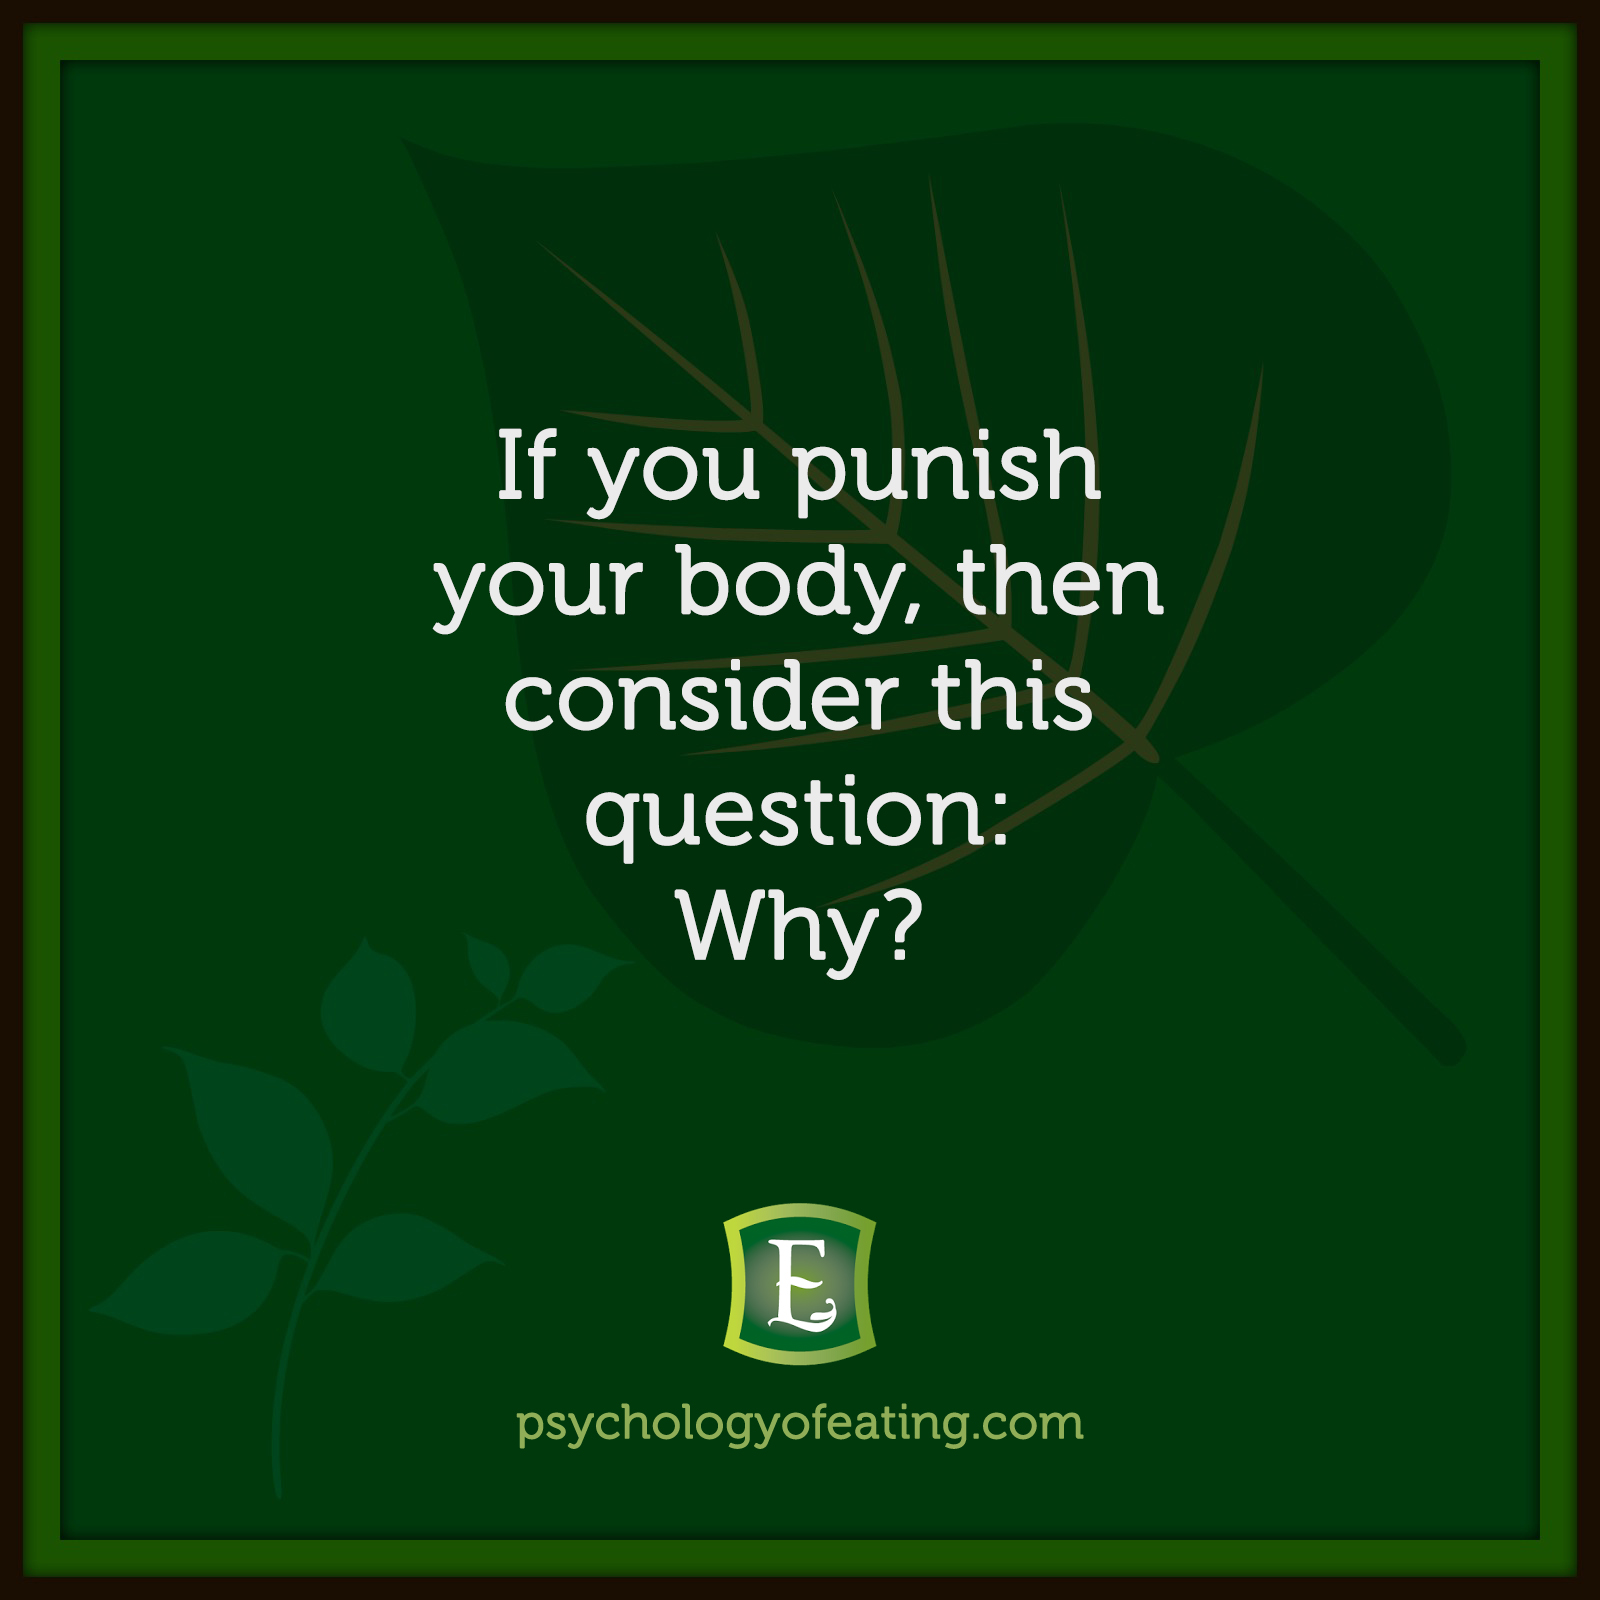 If you punish your body, then consider this question: Why? #health #nutrition #eatingpsychology #IPE